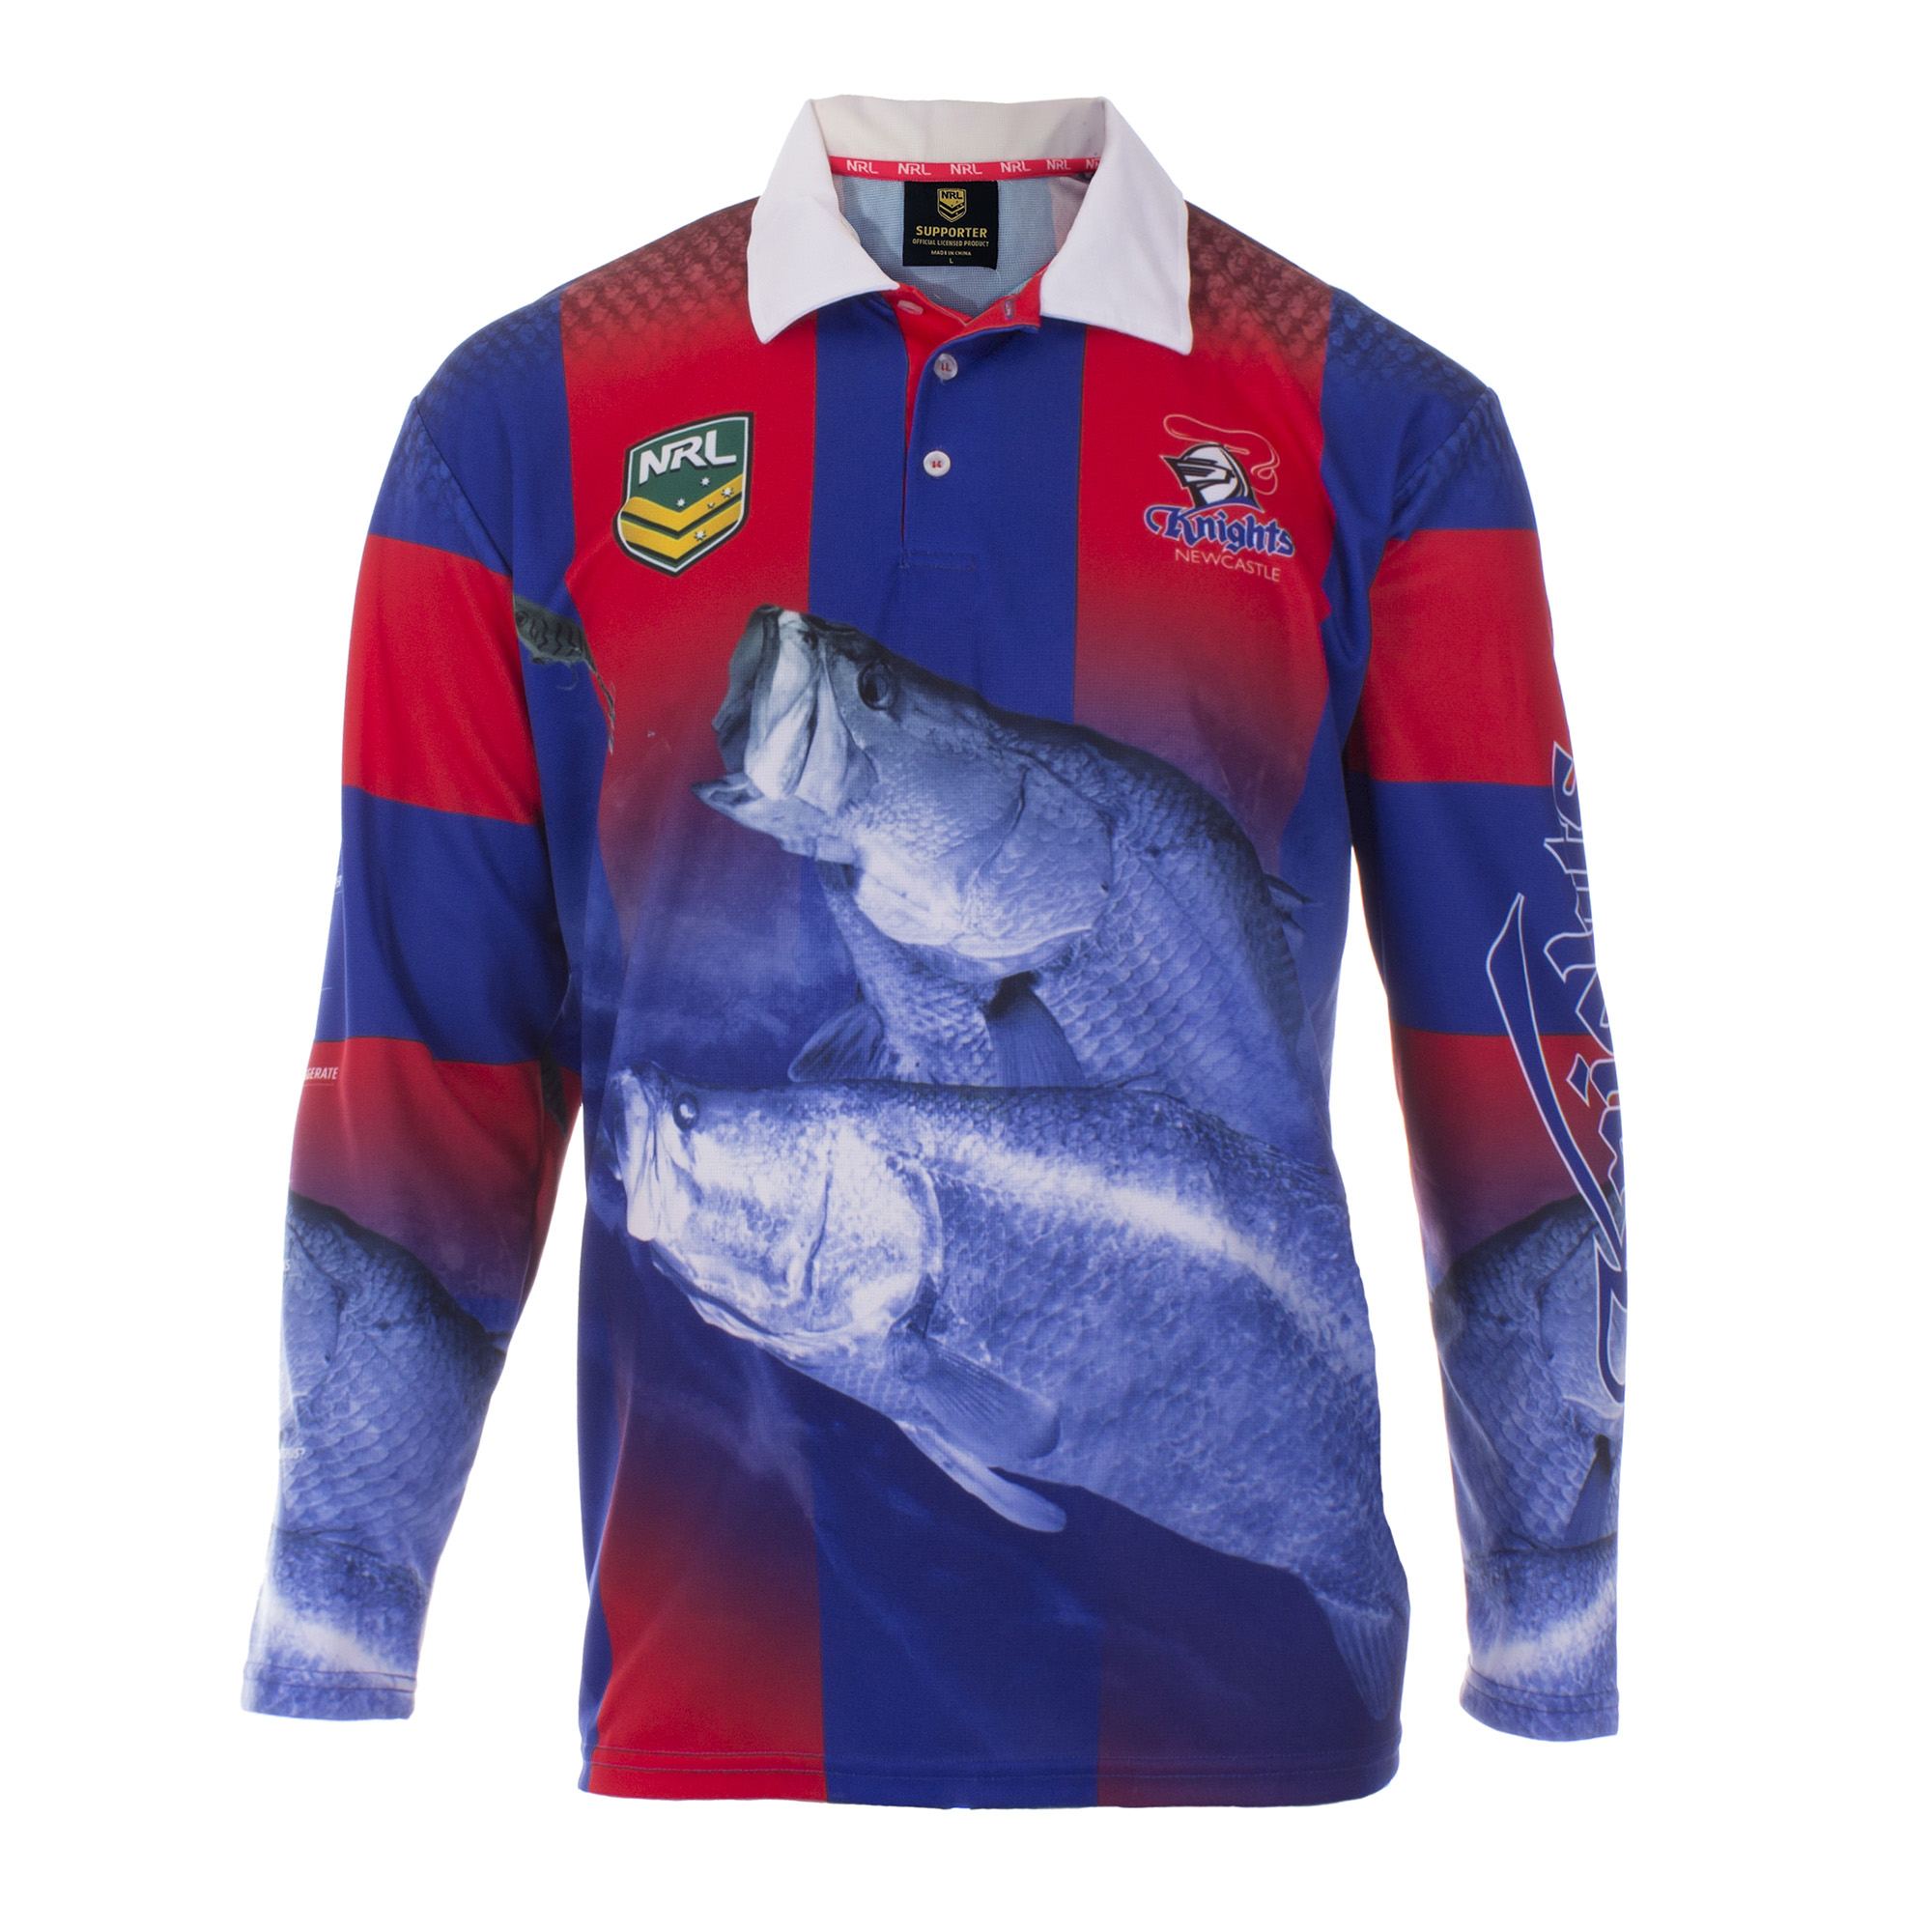 Personalised NRL Knights Fishing Shirt - Front View